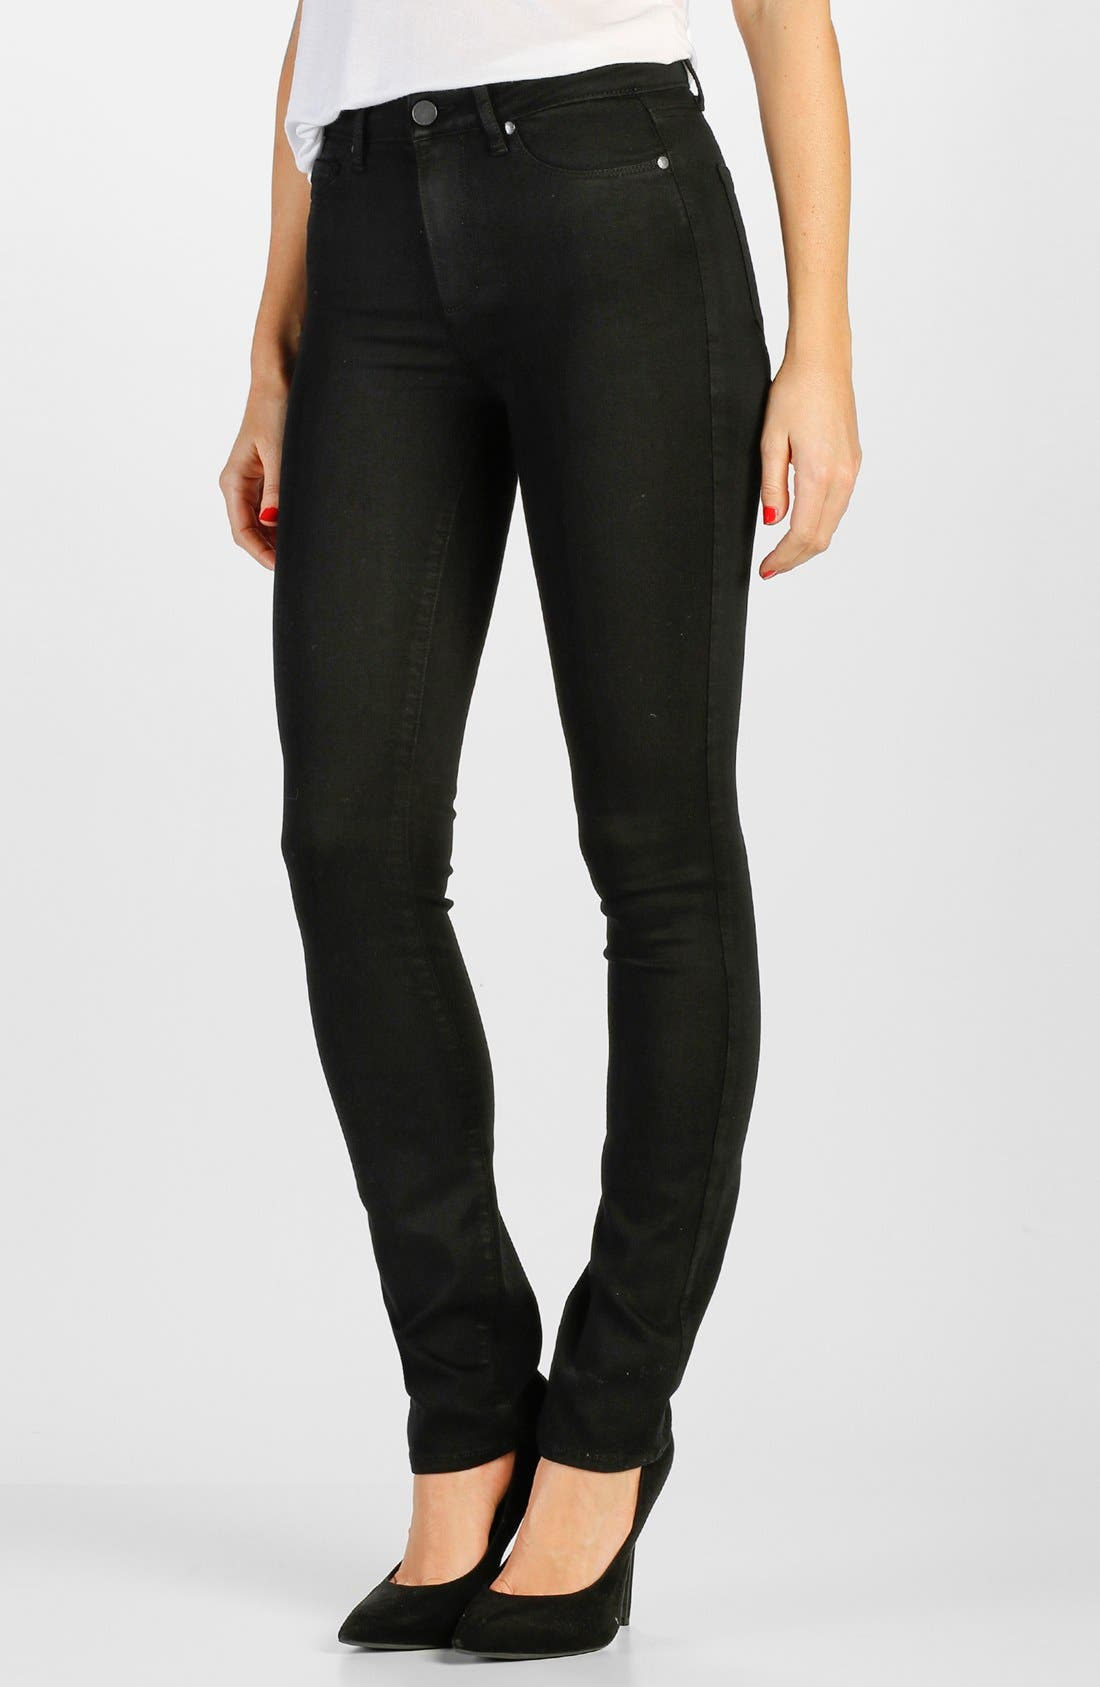 Transcend - Hoxton High Waist Straight Leg Jeans,                         Main,                         color, Black Shadow